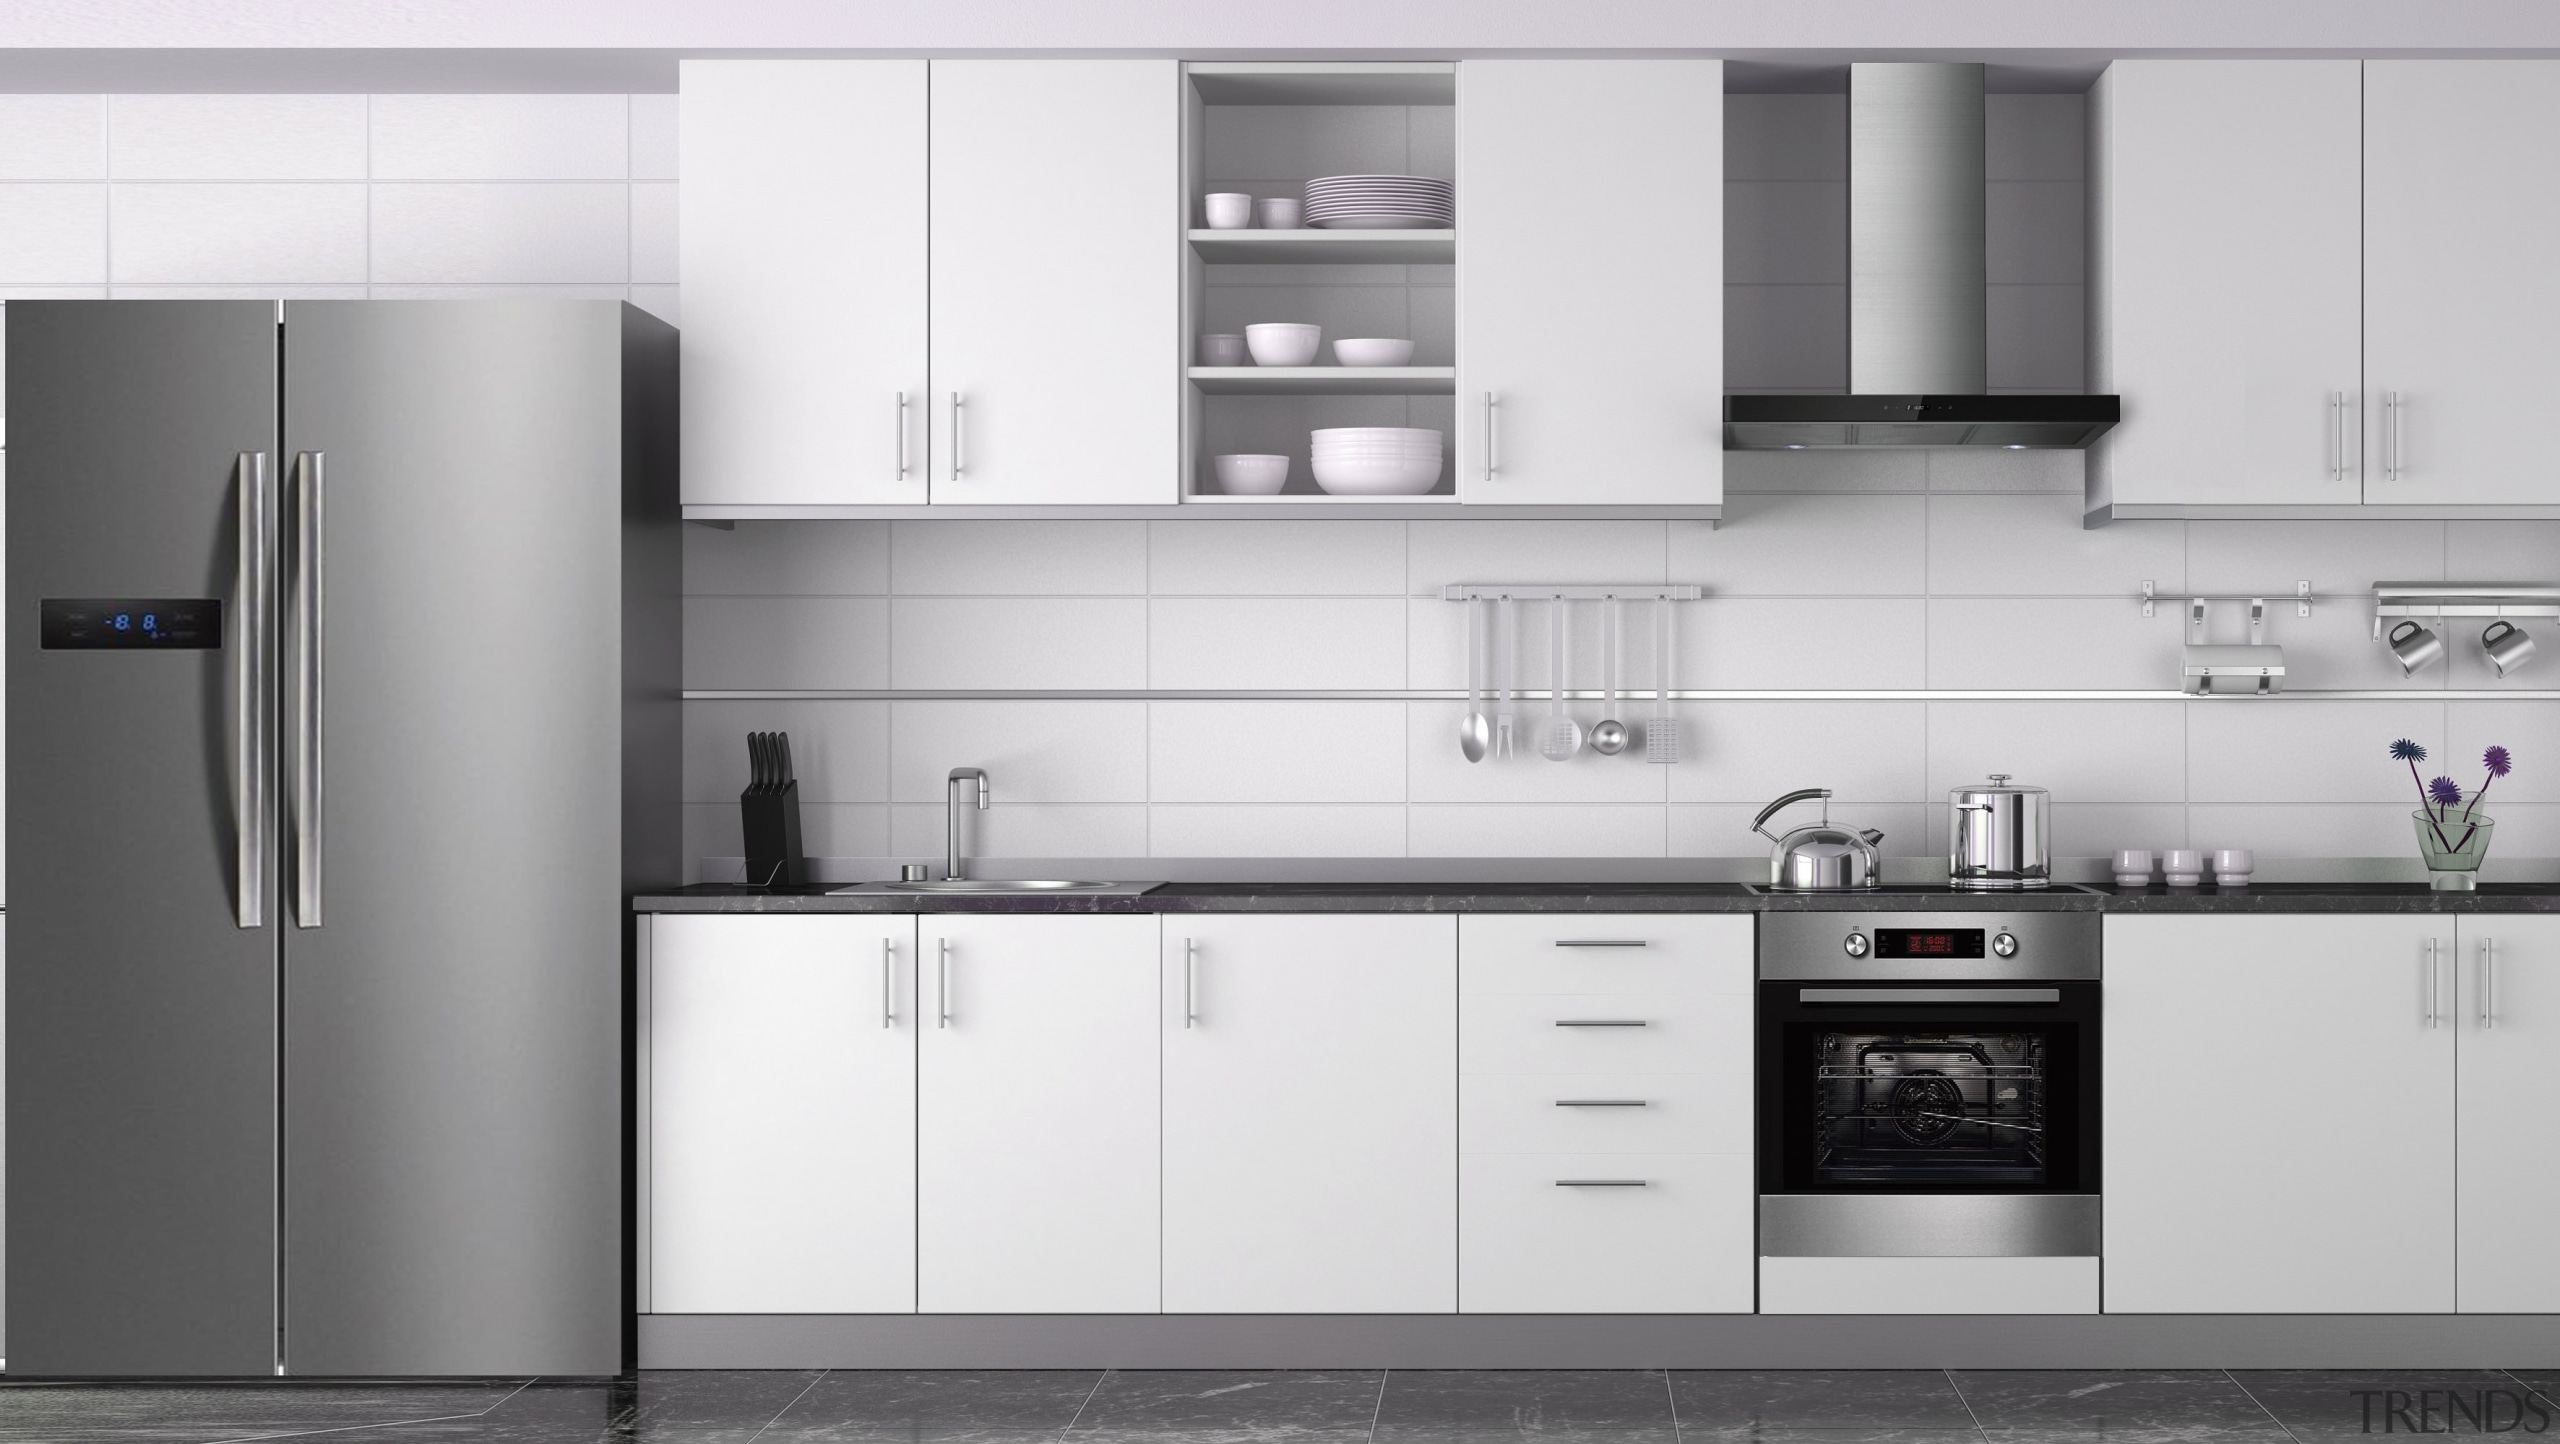 This kitchen features appliances by global appliance manufacturer cabinetry, countertop, cuisine classique, home appliance, interior design, kitchen, kitchen appliance, kitchen stove, major appliance, product, product design, refrigerator, small appliance, white, gray